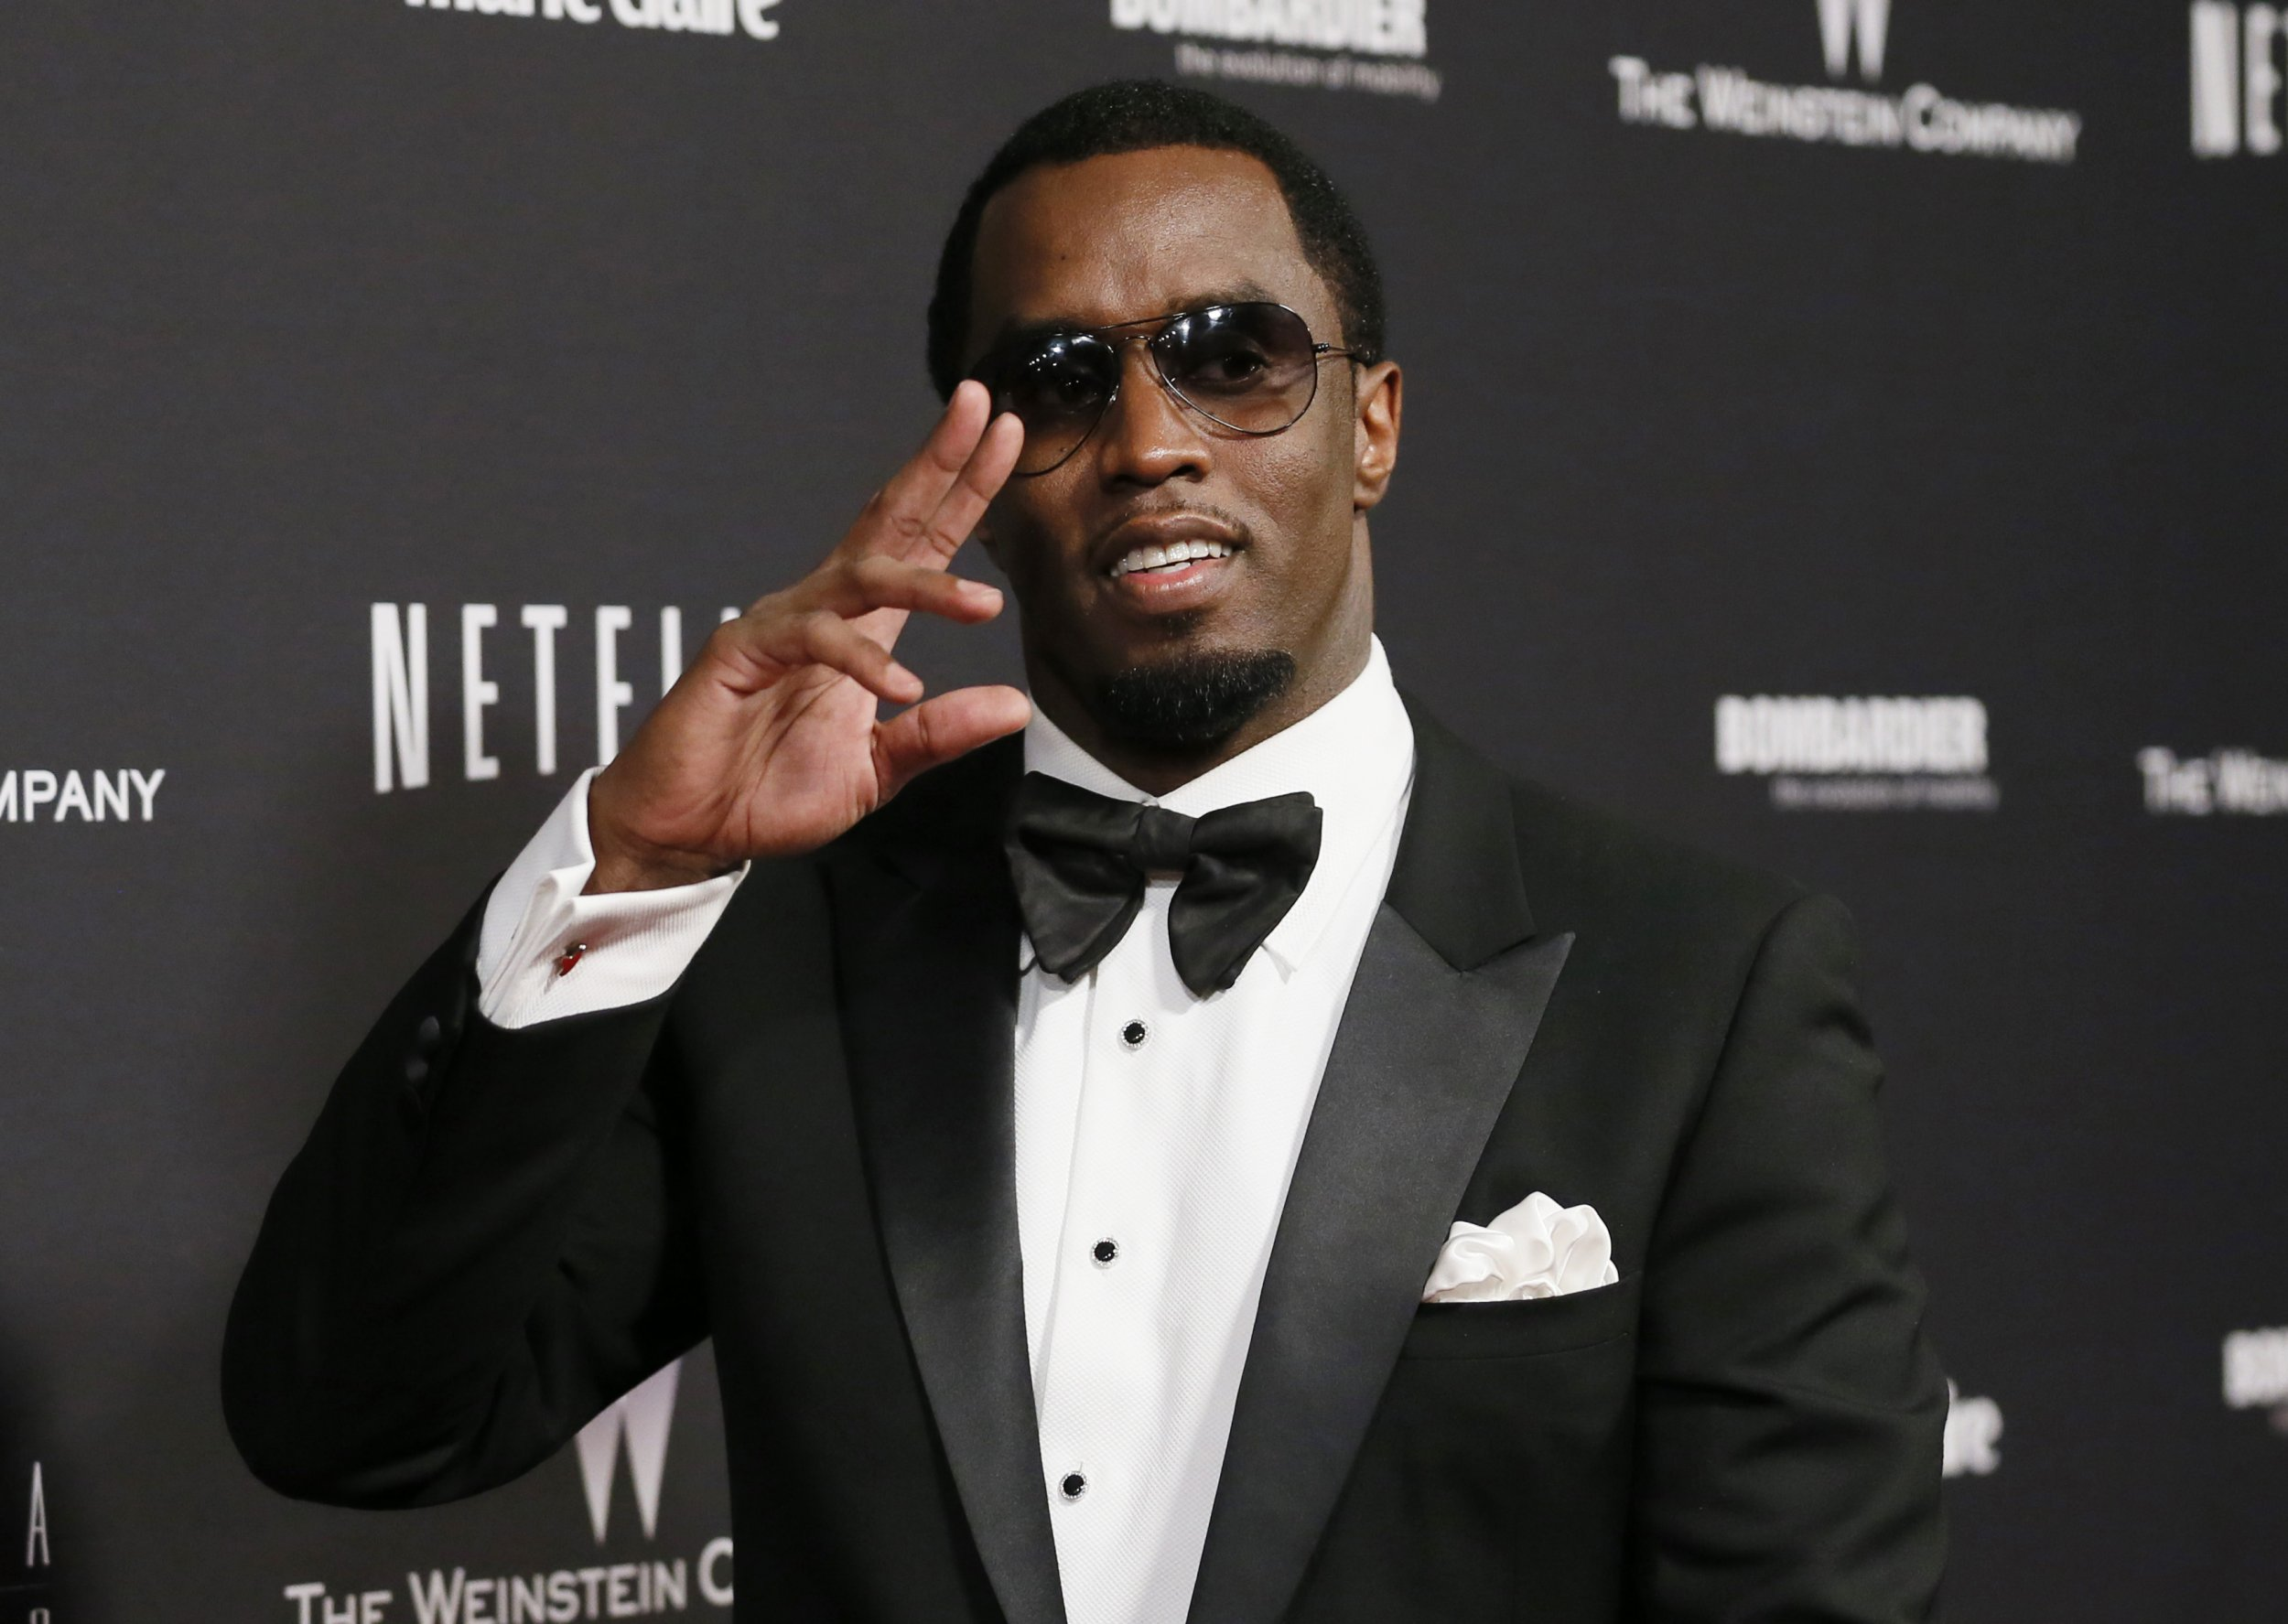 sean diddy combs entrepreneur paper Sean 'diddy' combs spilled the beans about gang warfare professor submitted research paper two weeks before he died the entrepreneur also touched.